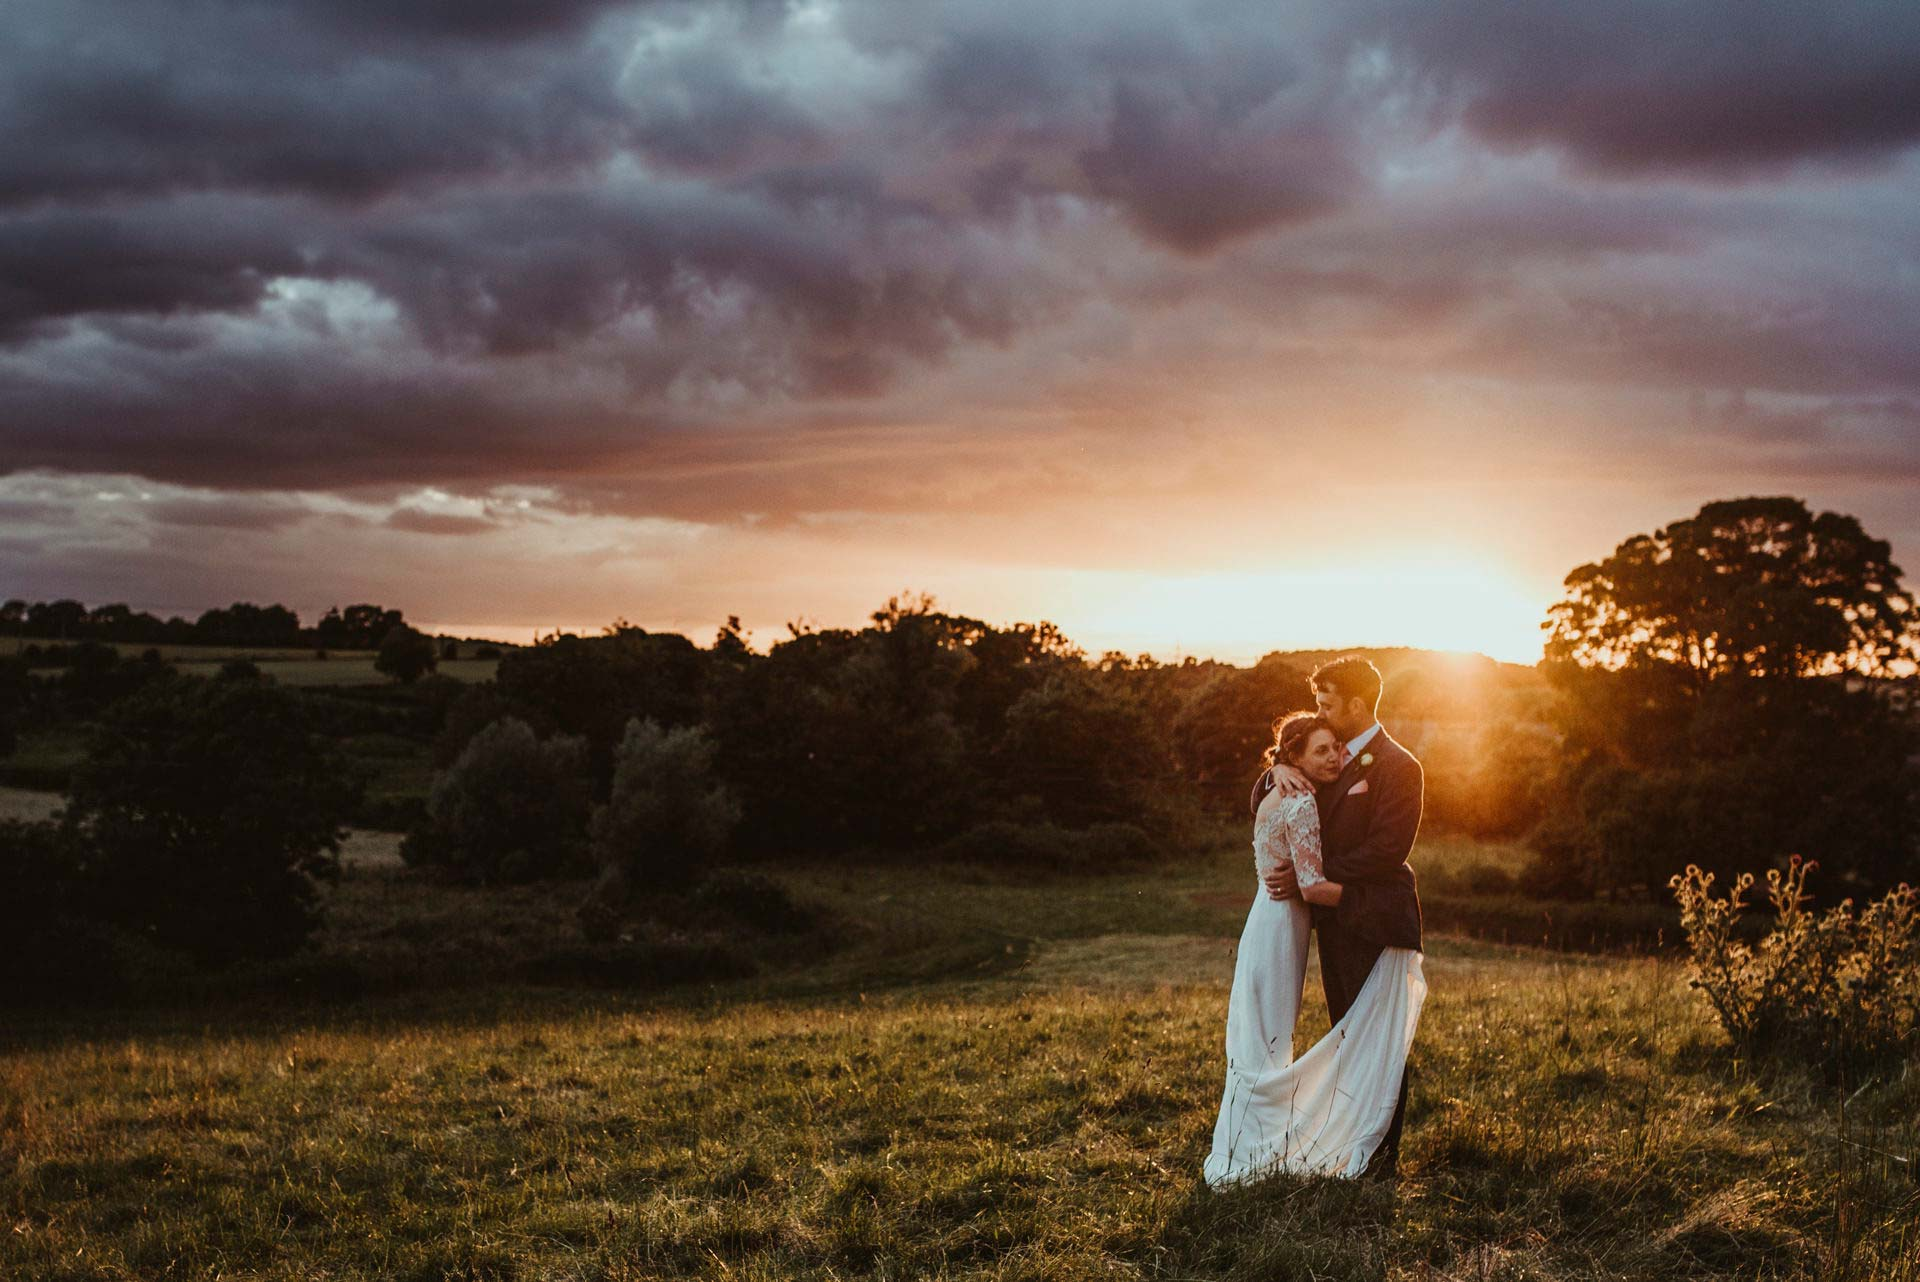 Essex Wedding Photographer Jess Soper Couple outside wedding